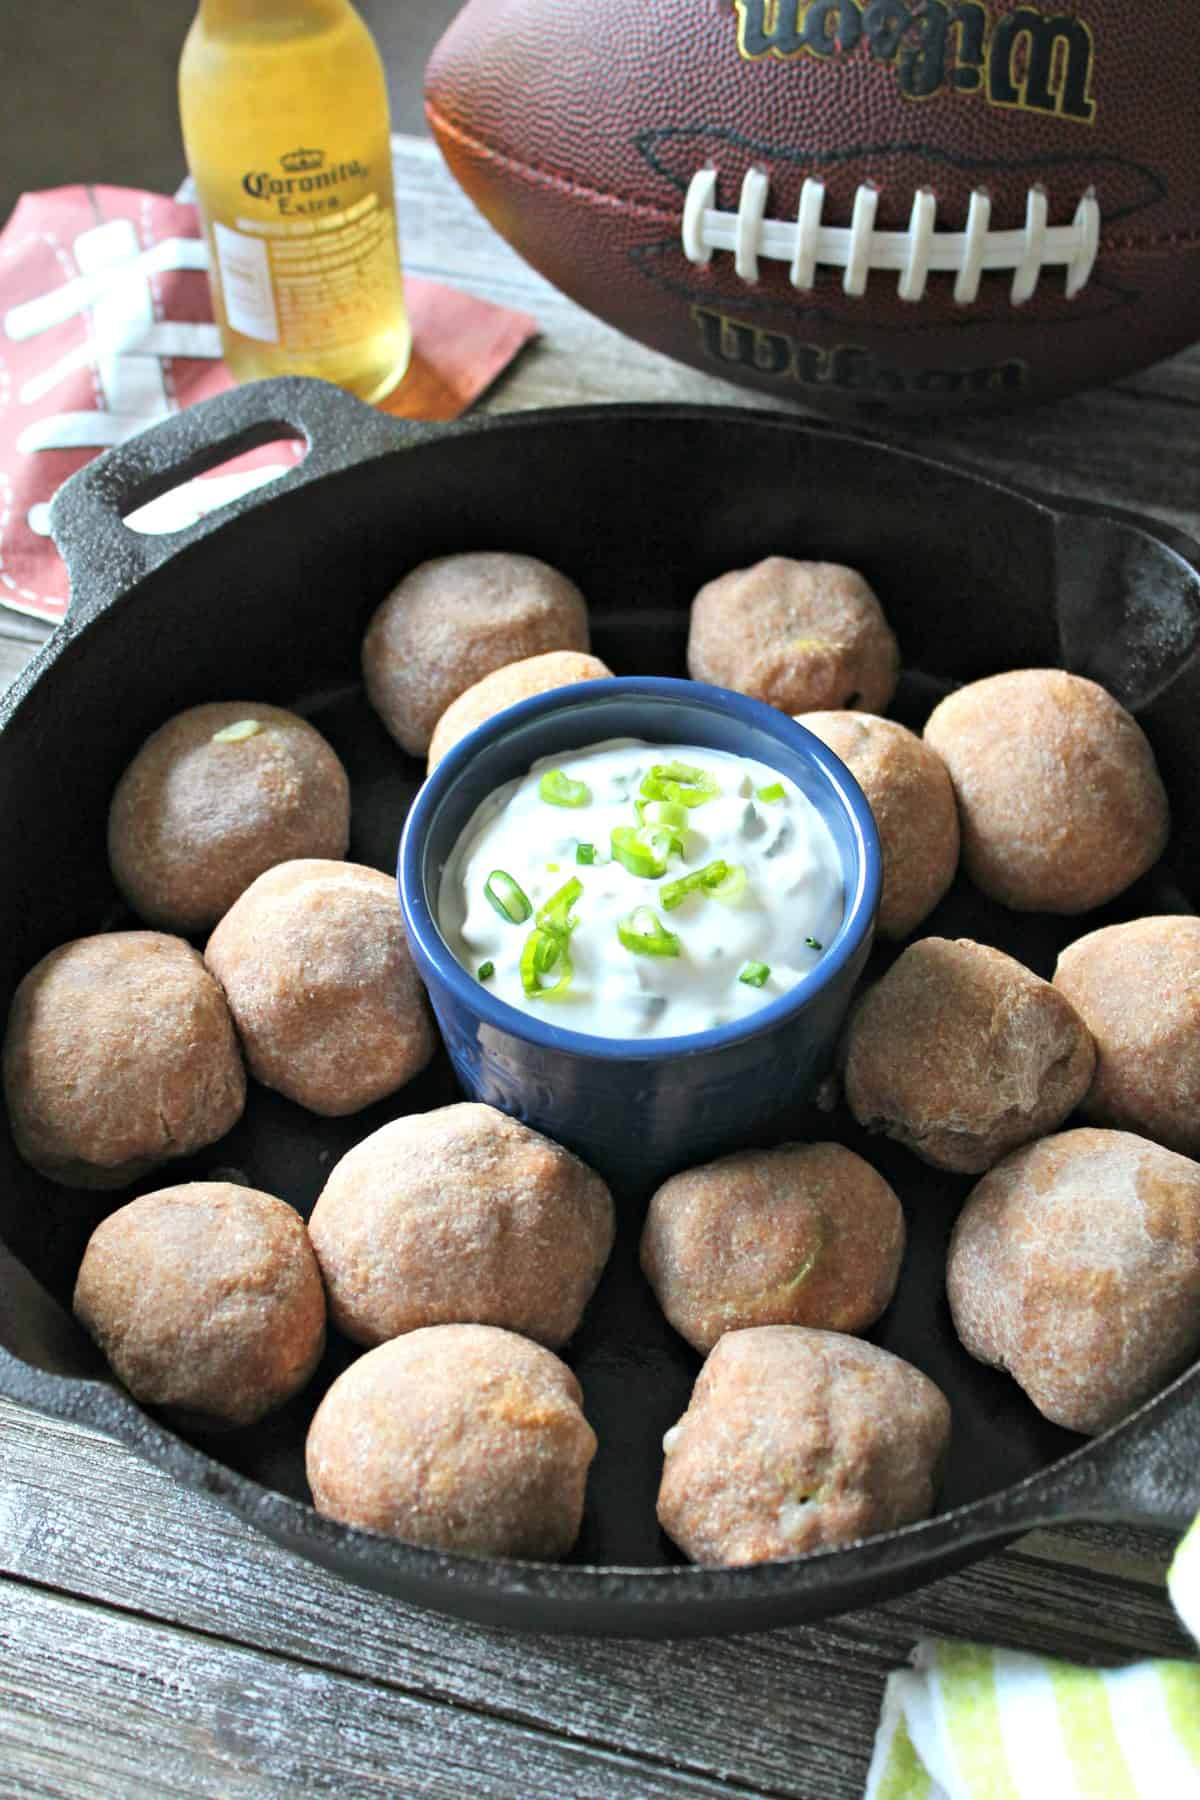 These creamy, cheesy jalapeno pepper bombs are a perfect poppable game day appetizer